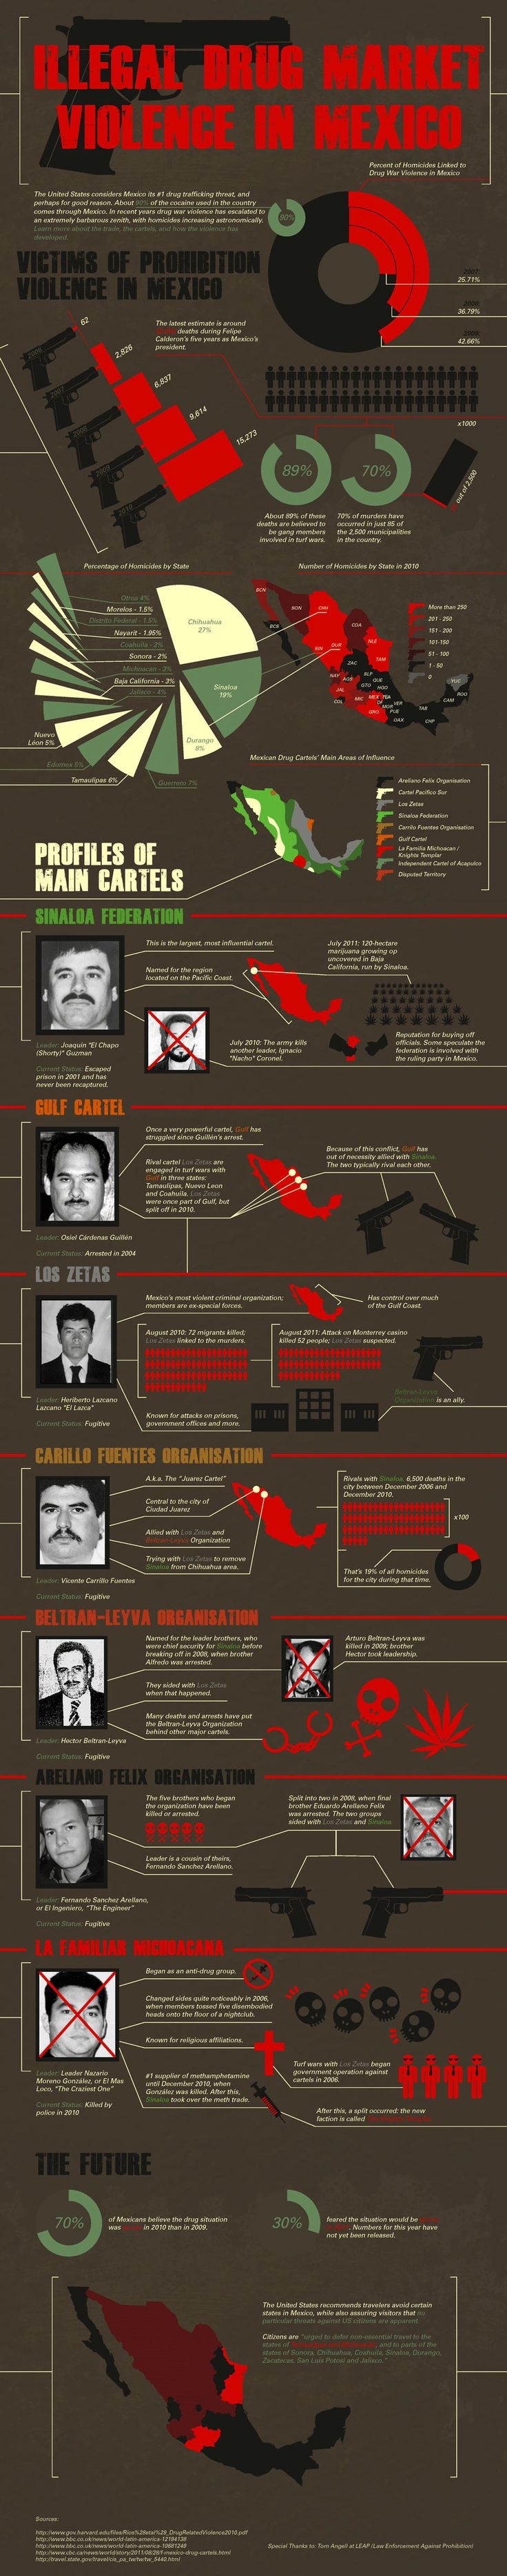 Illegal drug market violence in Mexico (Guardian infographic)